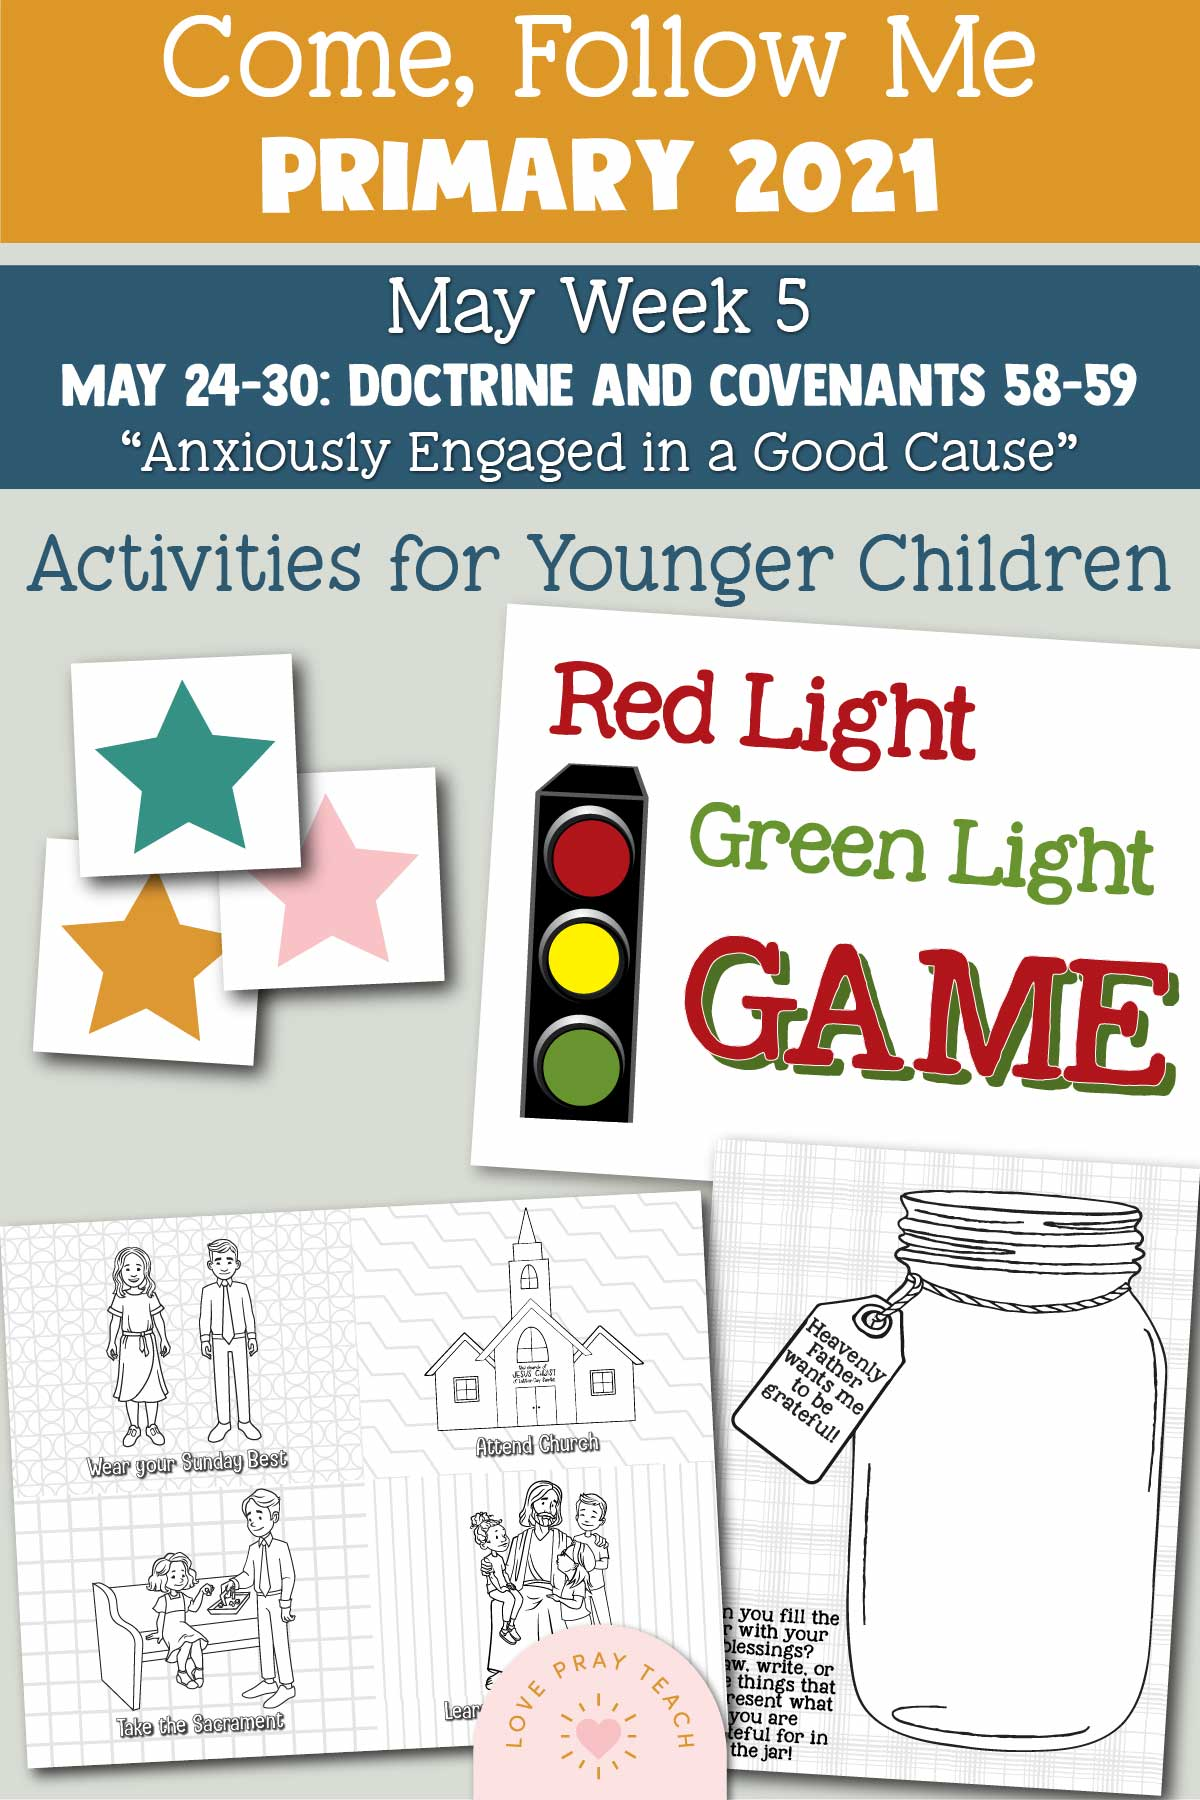 """Come, Follow Me for Primary 2021 May Week 5 Doctrine and Covenants 58-59 """"Anxiously Engaged in a Good Cause"""" Printable Lesson Materials"""